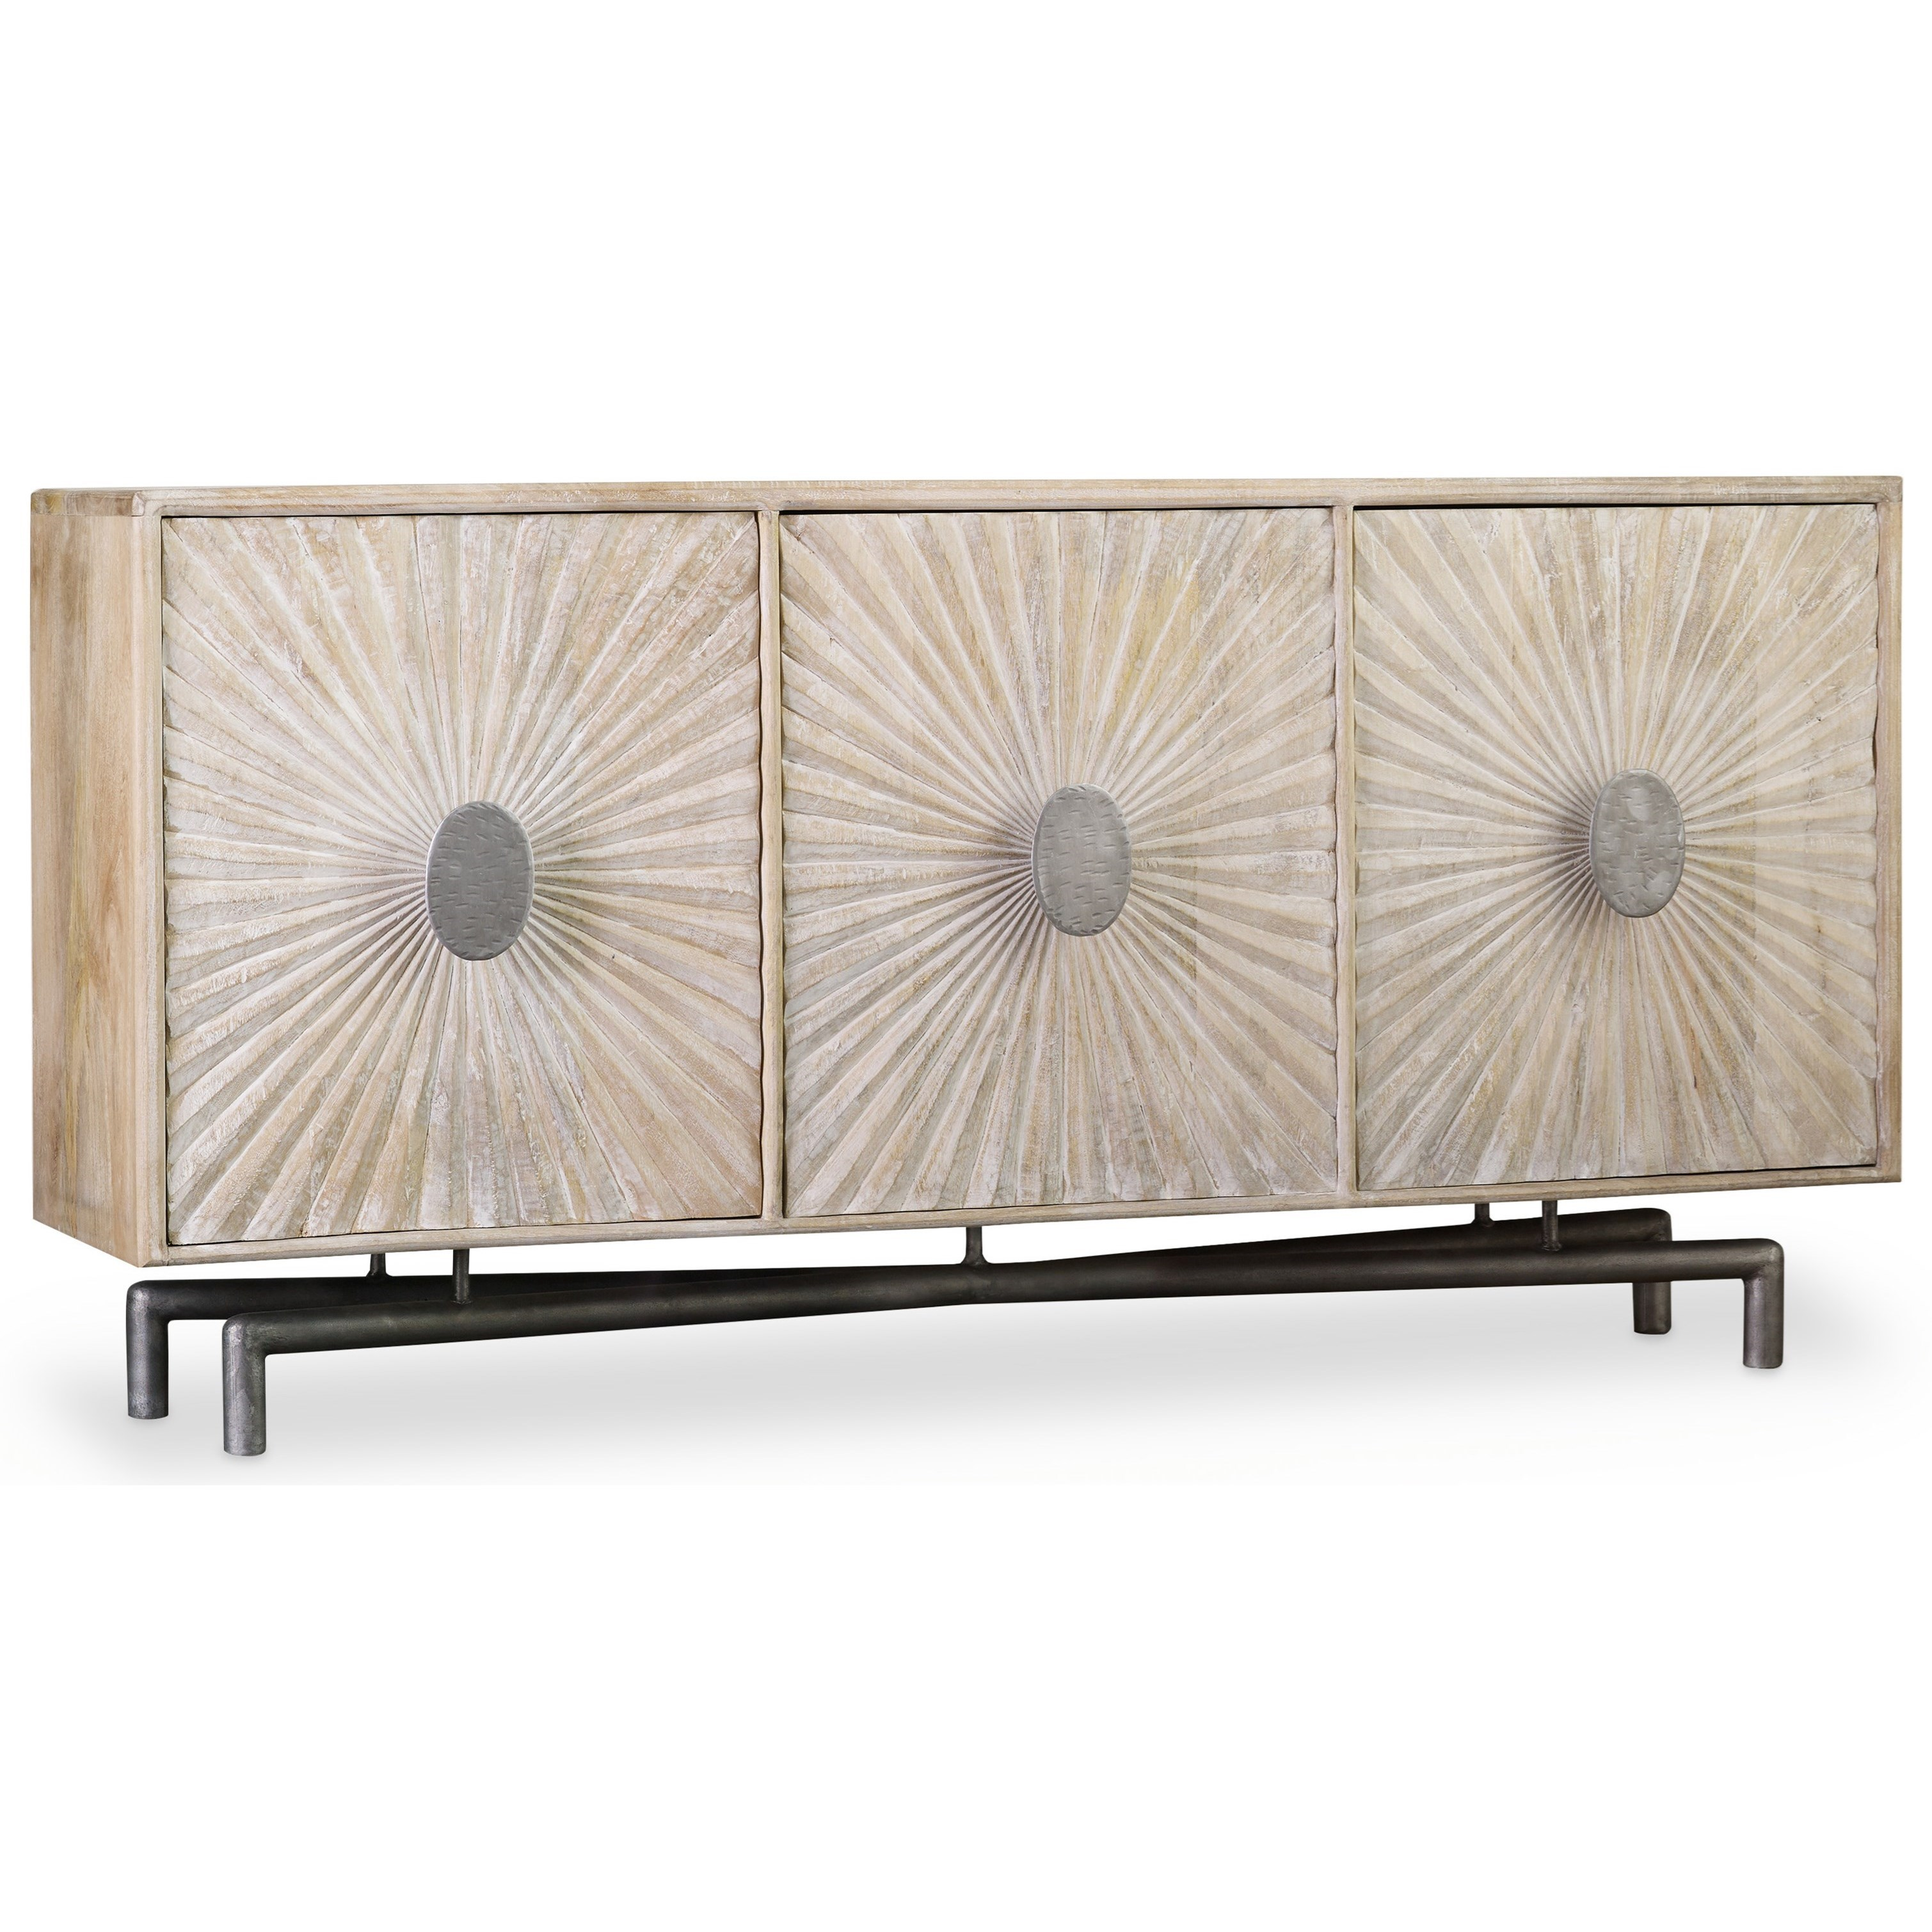 Living Room Accents 68 Inch Entertainment Console by Hooker Furniture at Fisher Home Furnishings